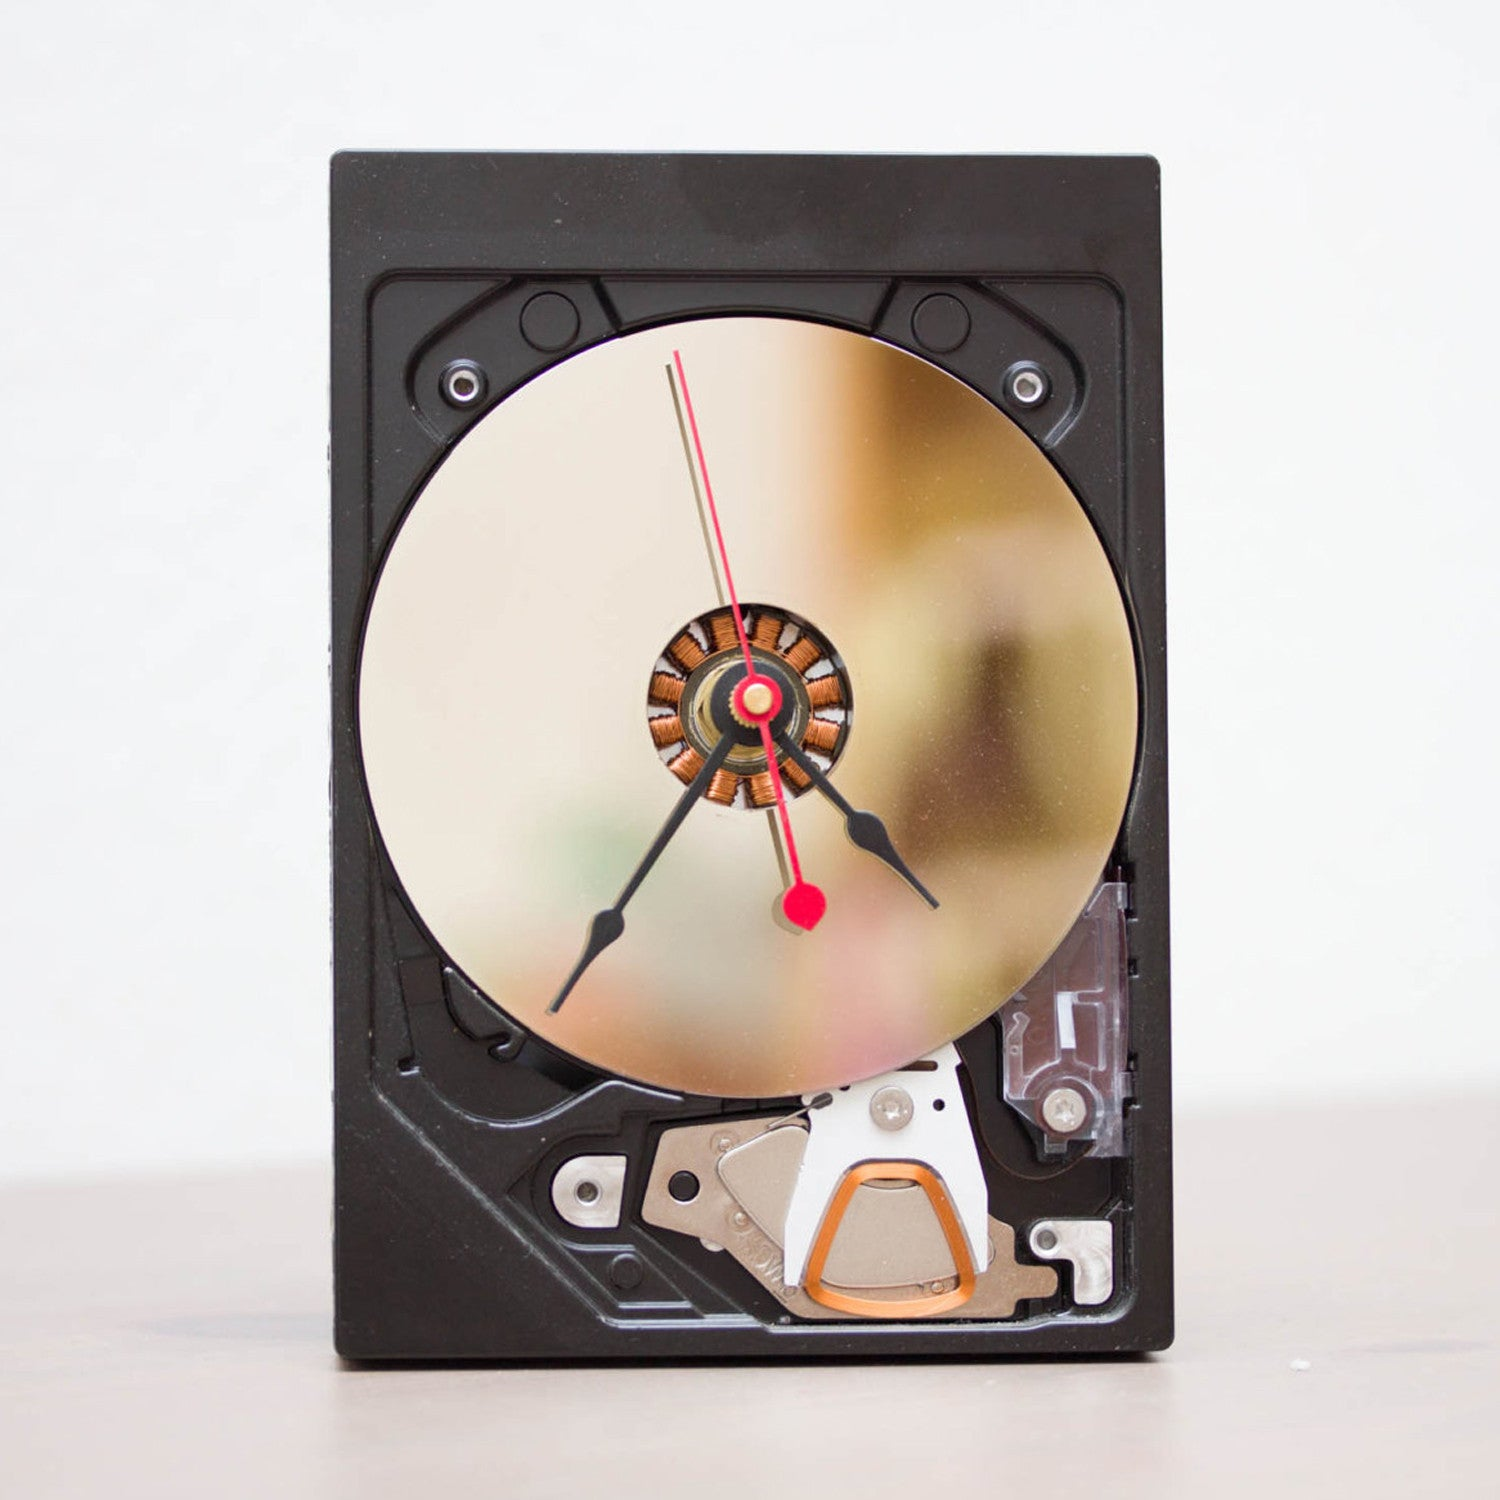 Desk clock made of a recycled HDD